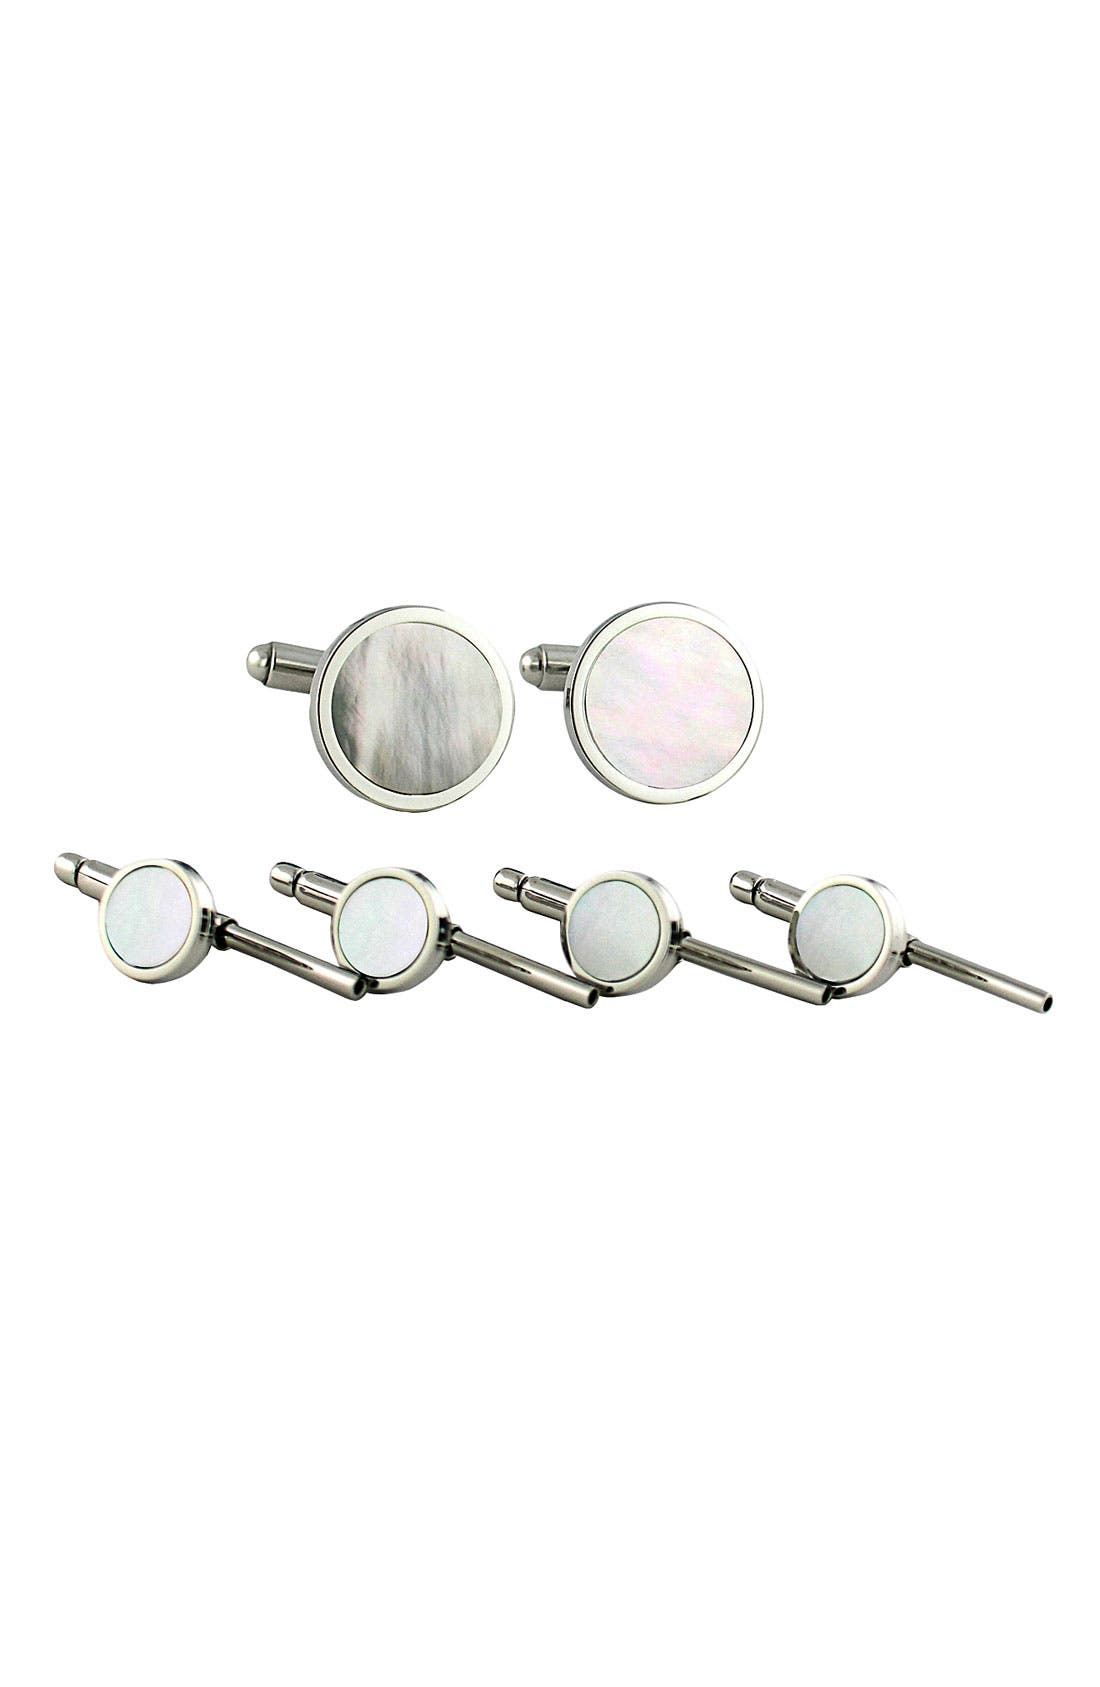 Alternate Image 1 Selected - David Donahue Mother-of-Pearl Cuff Link & Stud Set